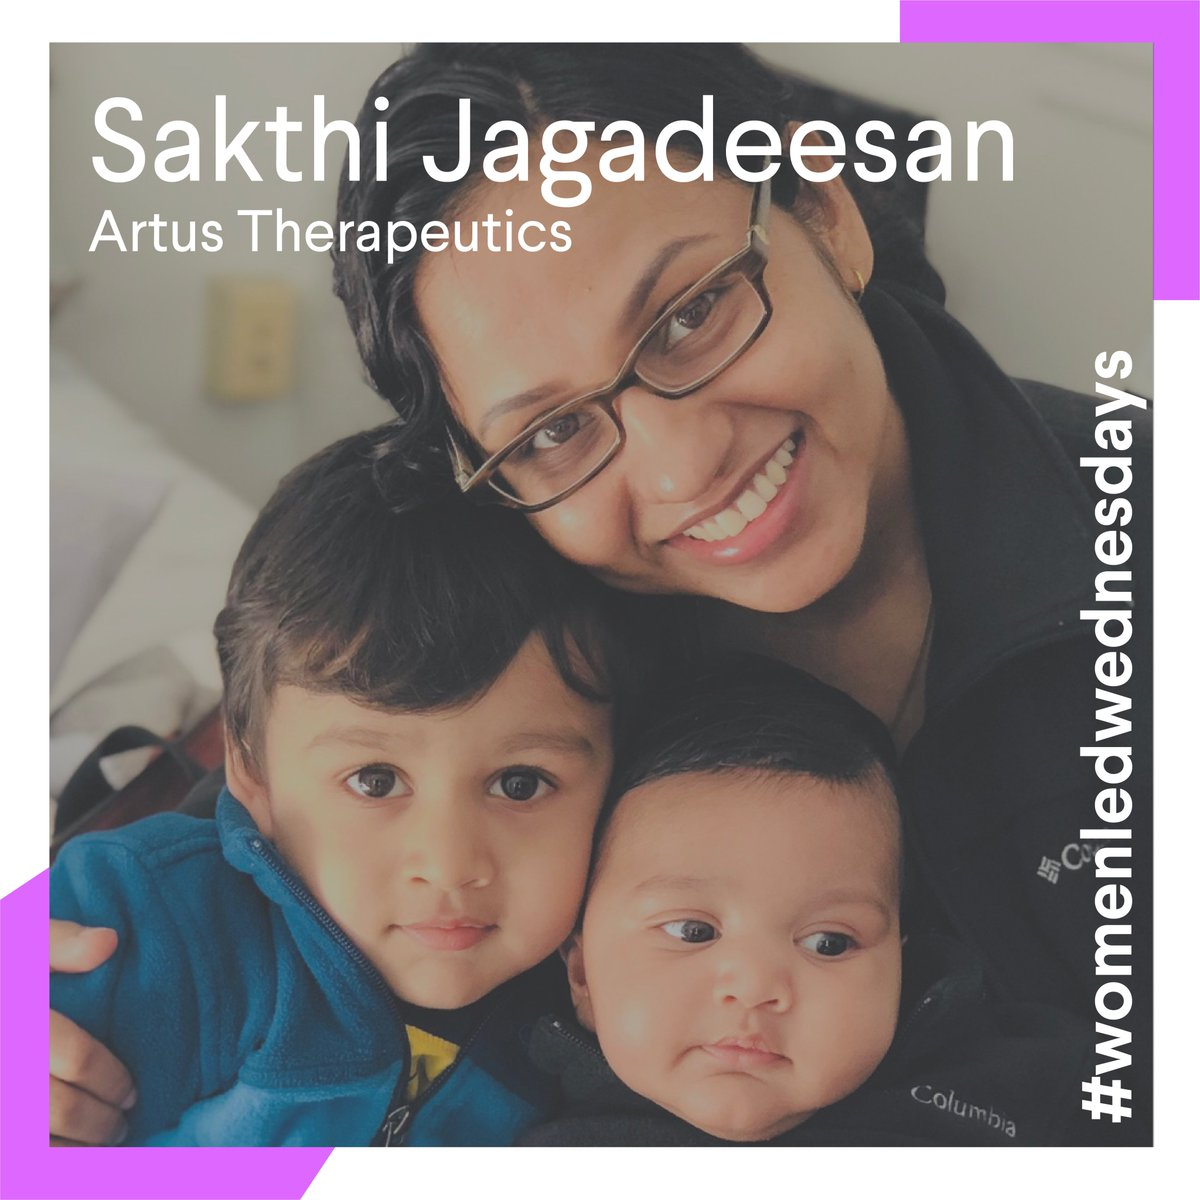 Sakthi Jagadeesan is Co-Founder/COO of Artus Therapeutics, a pre-clinical stage life science company at the Life Lab developing therapeutics for barrier dysfunction diseases. We spoke with Sakthi about the highs and lows of entrepreneurship: innovationlabs.harvard.edu/about/news/har…